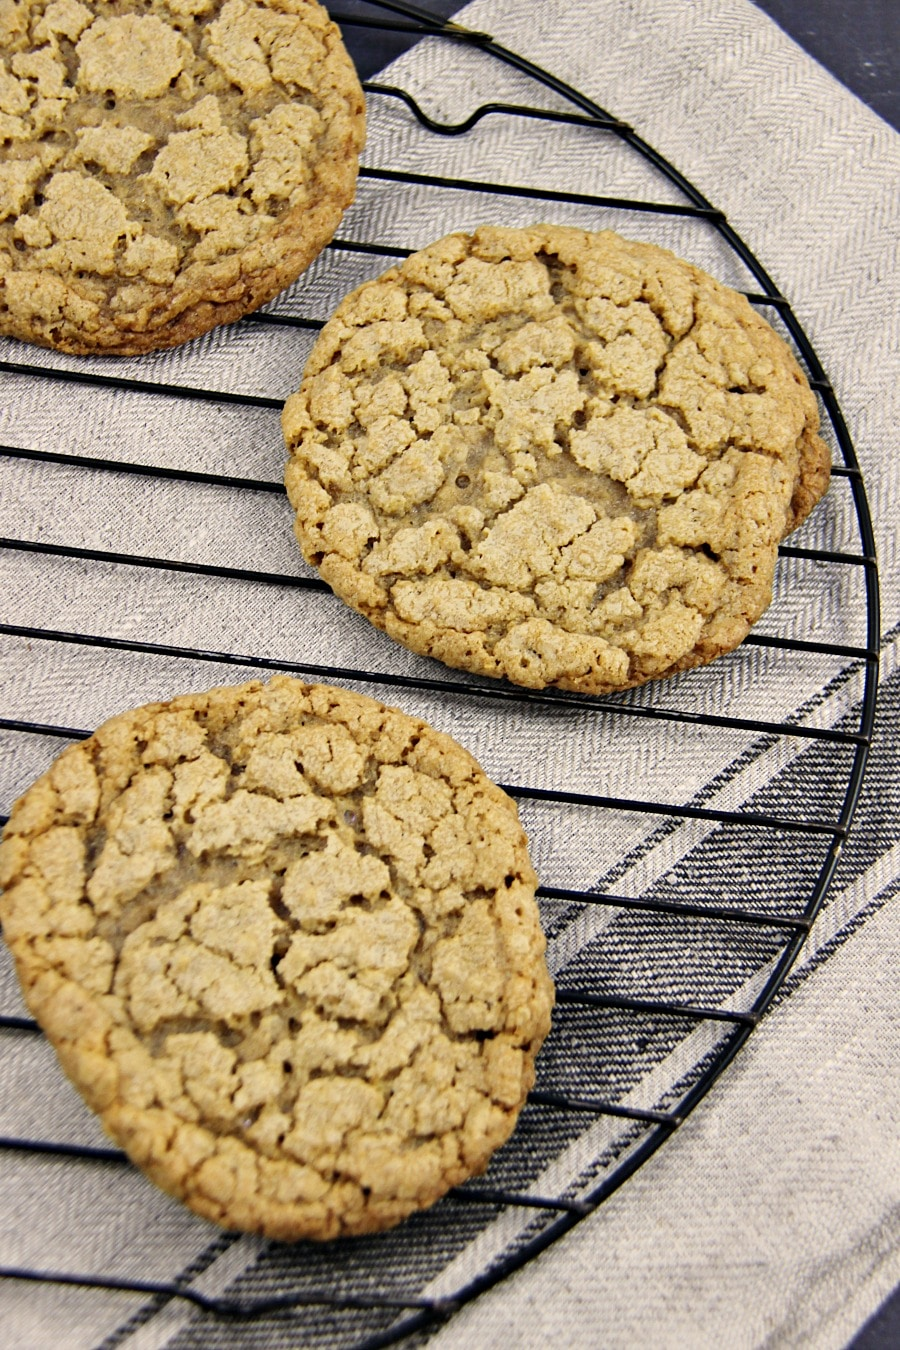 Peanut Butter and Honey Oatmeal Cookies